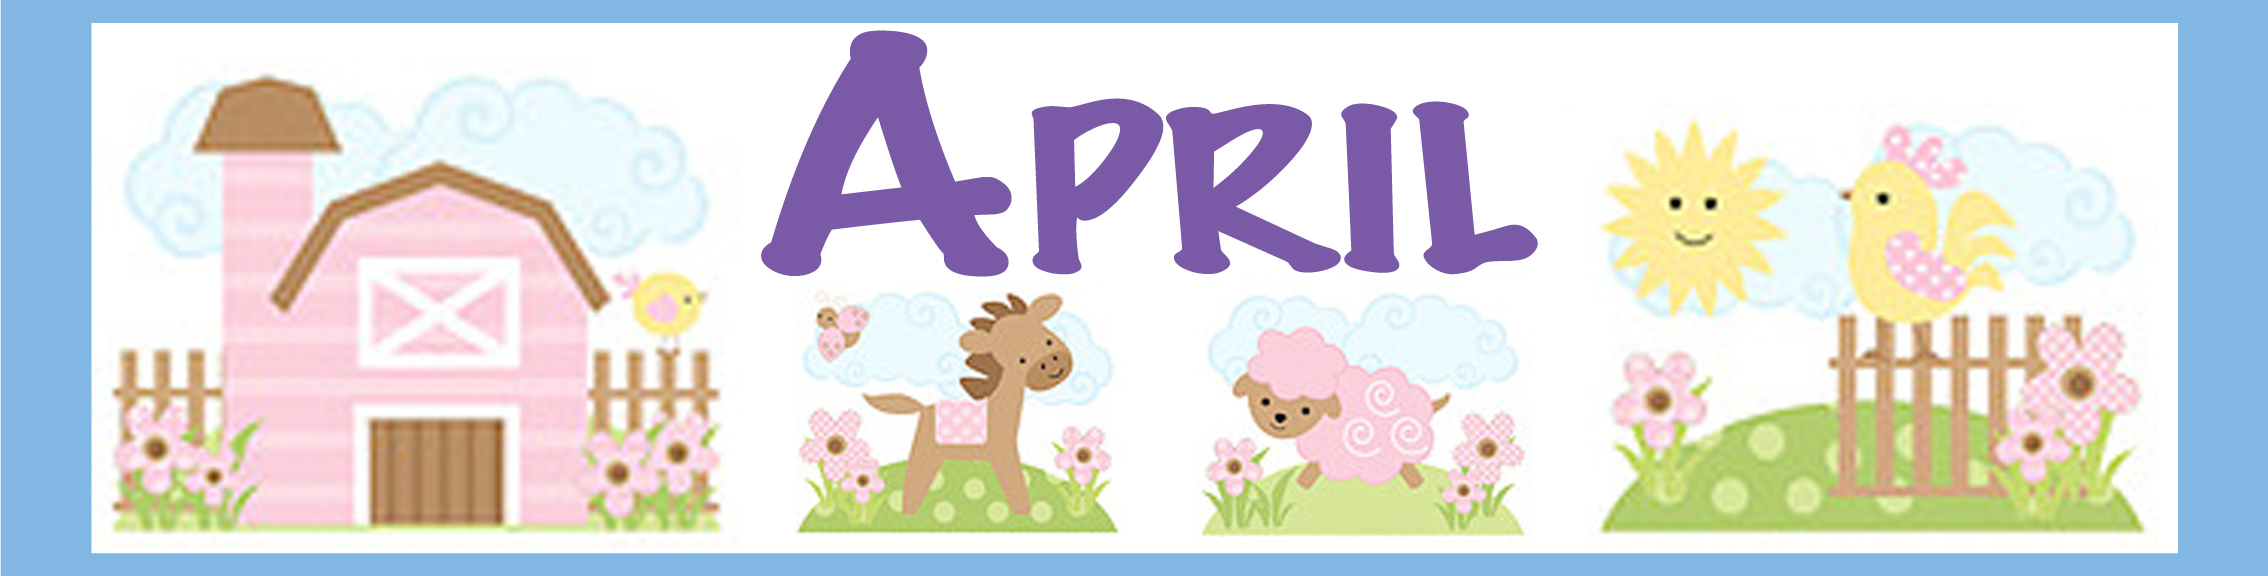 Curriculum itsy bitsy scholars. April clipart banner